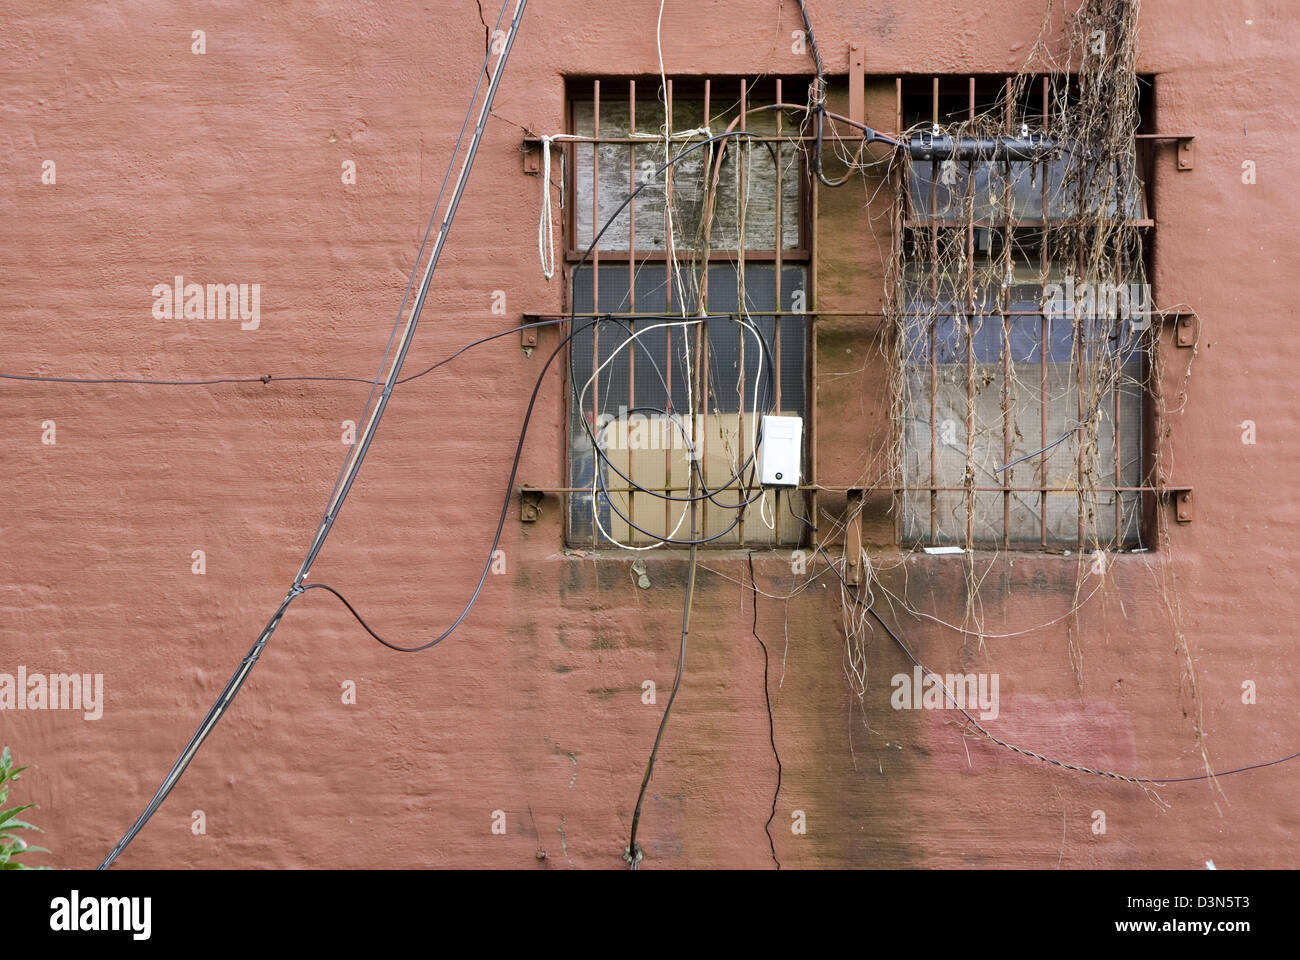 An old window with bars covered in vines, weeds and old wires - Stock Image